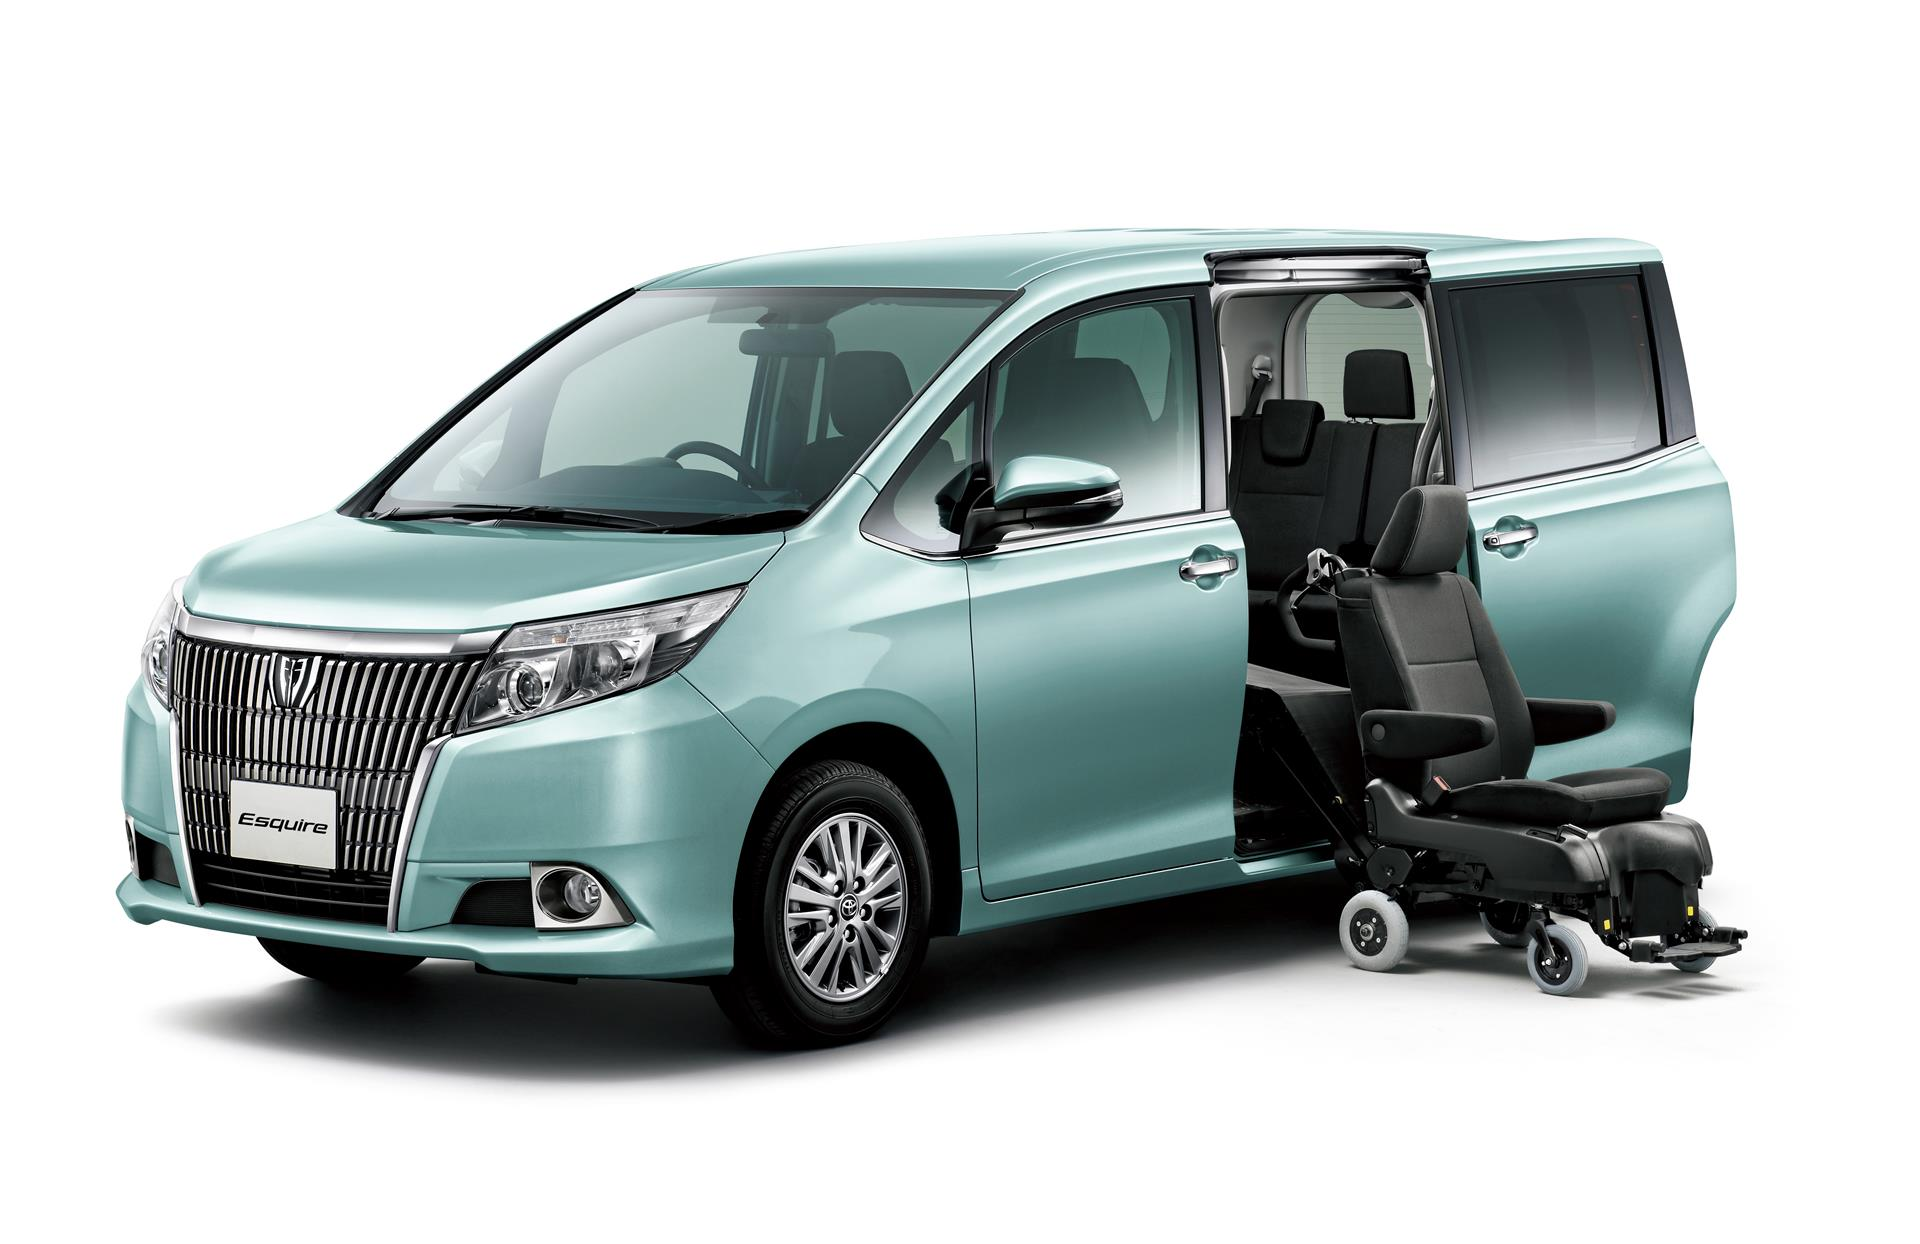 toyota all new vellfire 2.5 zg edition konsumsi bbm grand veloz 1.3 reveals esquire van batman would drive one